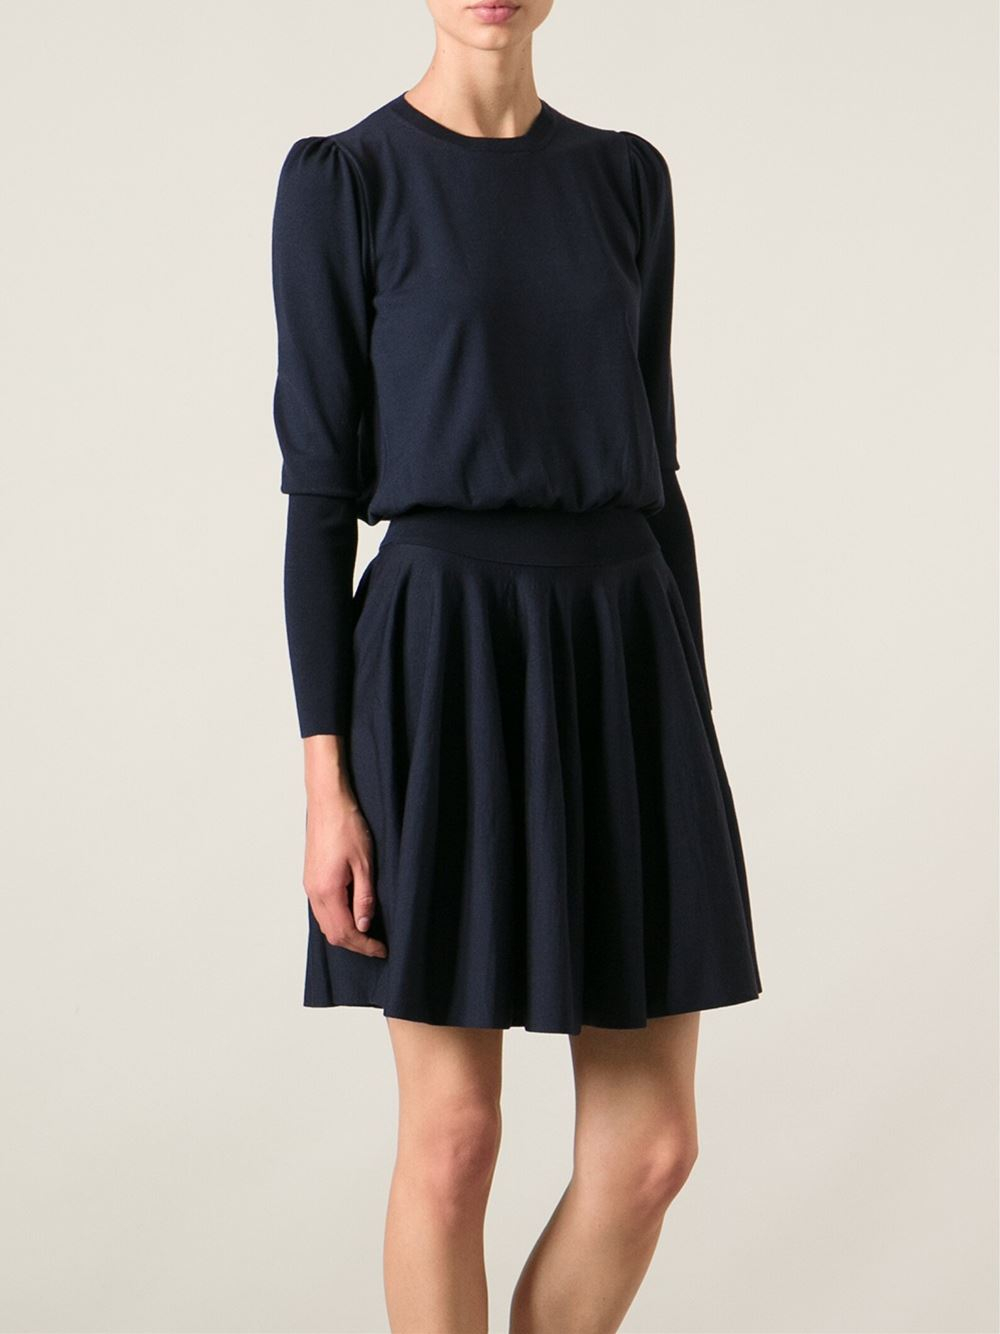 Find Blue knit dresses at ShopStyle. Shop the latest collection of Blue knit dresses from the most popular stores - all in one place.